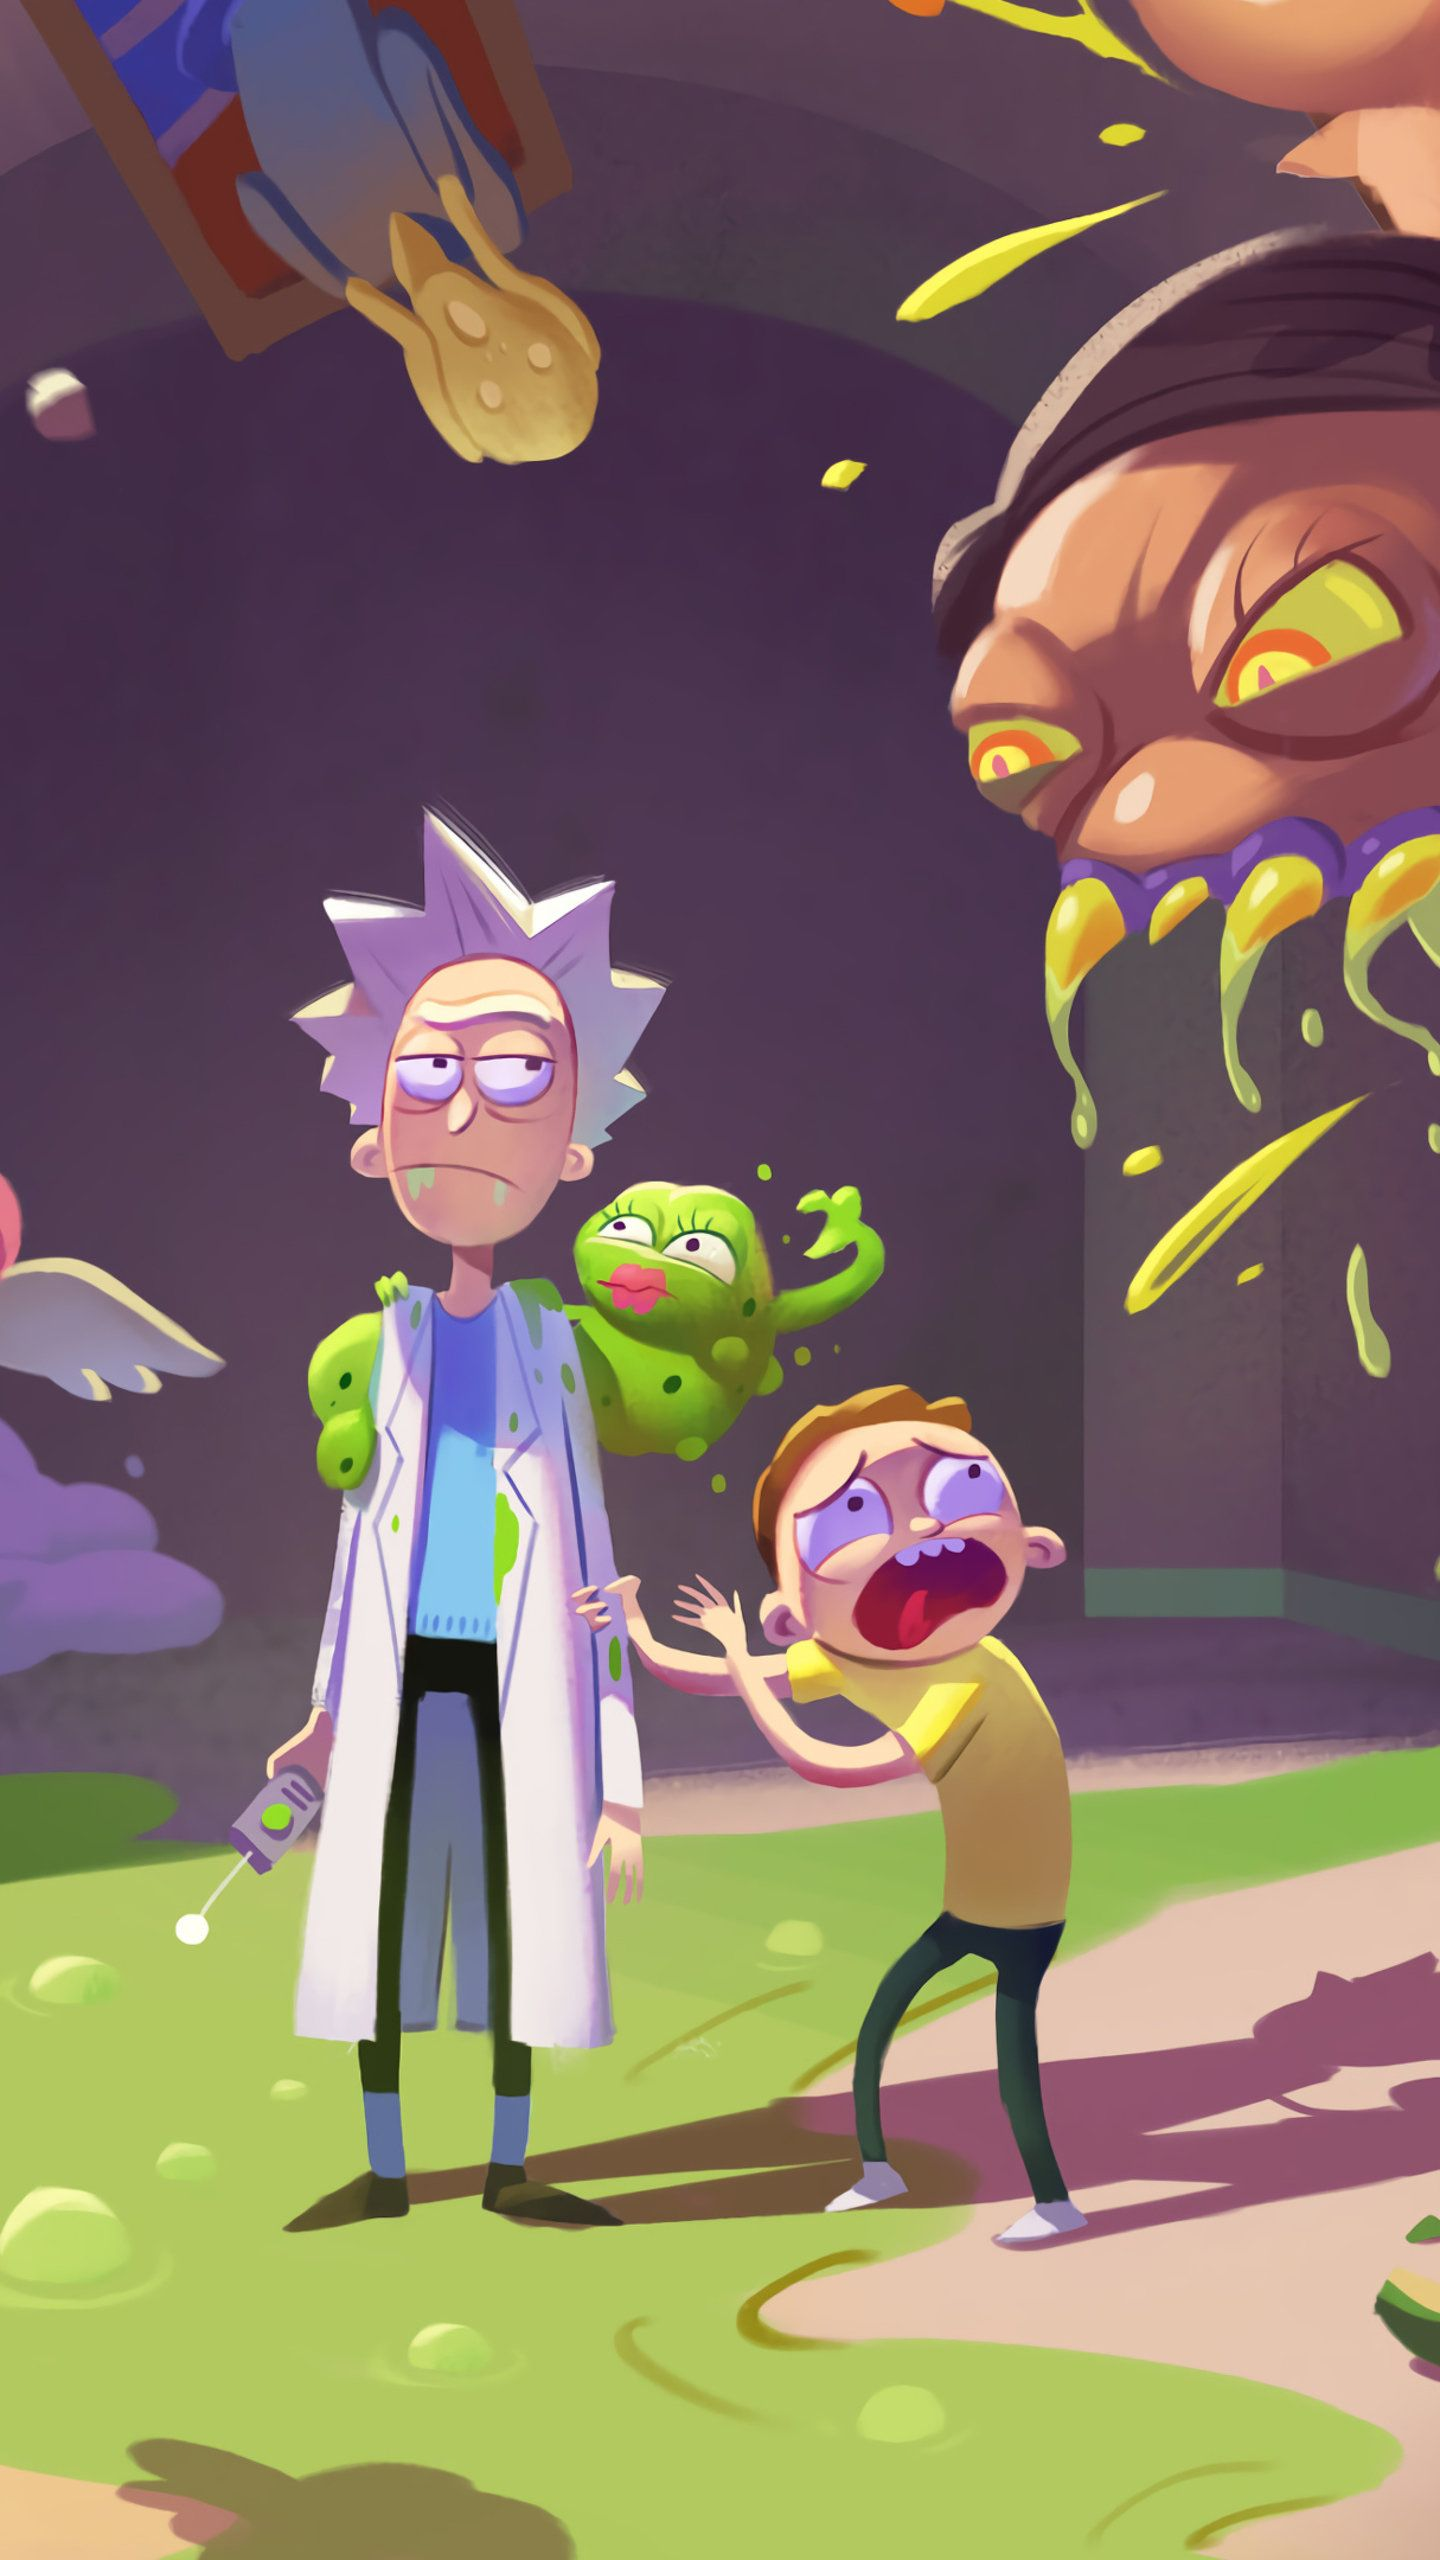 Rick And Morty Aesthetic Ps4 Wallpapers - Wallpaper Cave